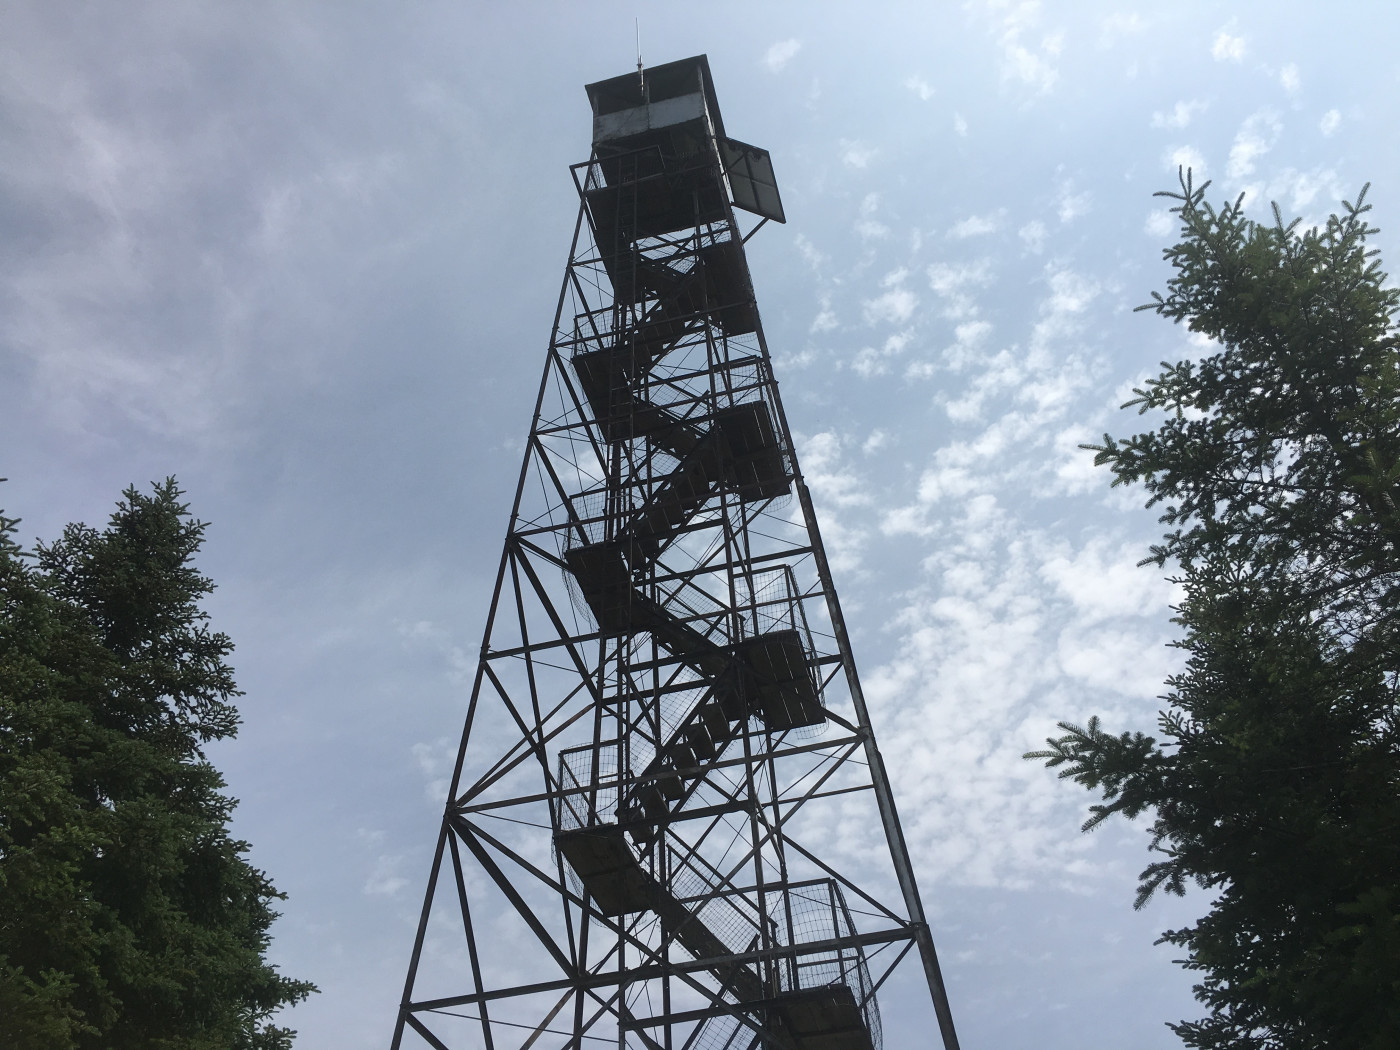 The Wakely Mountain fire tower.